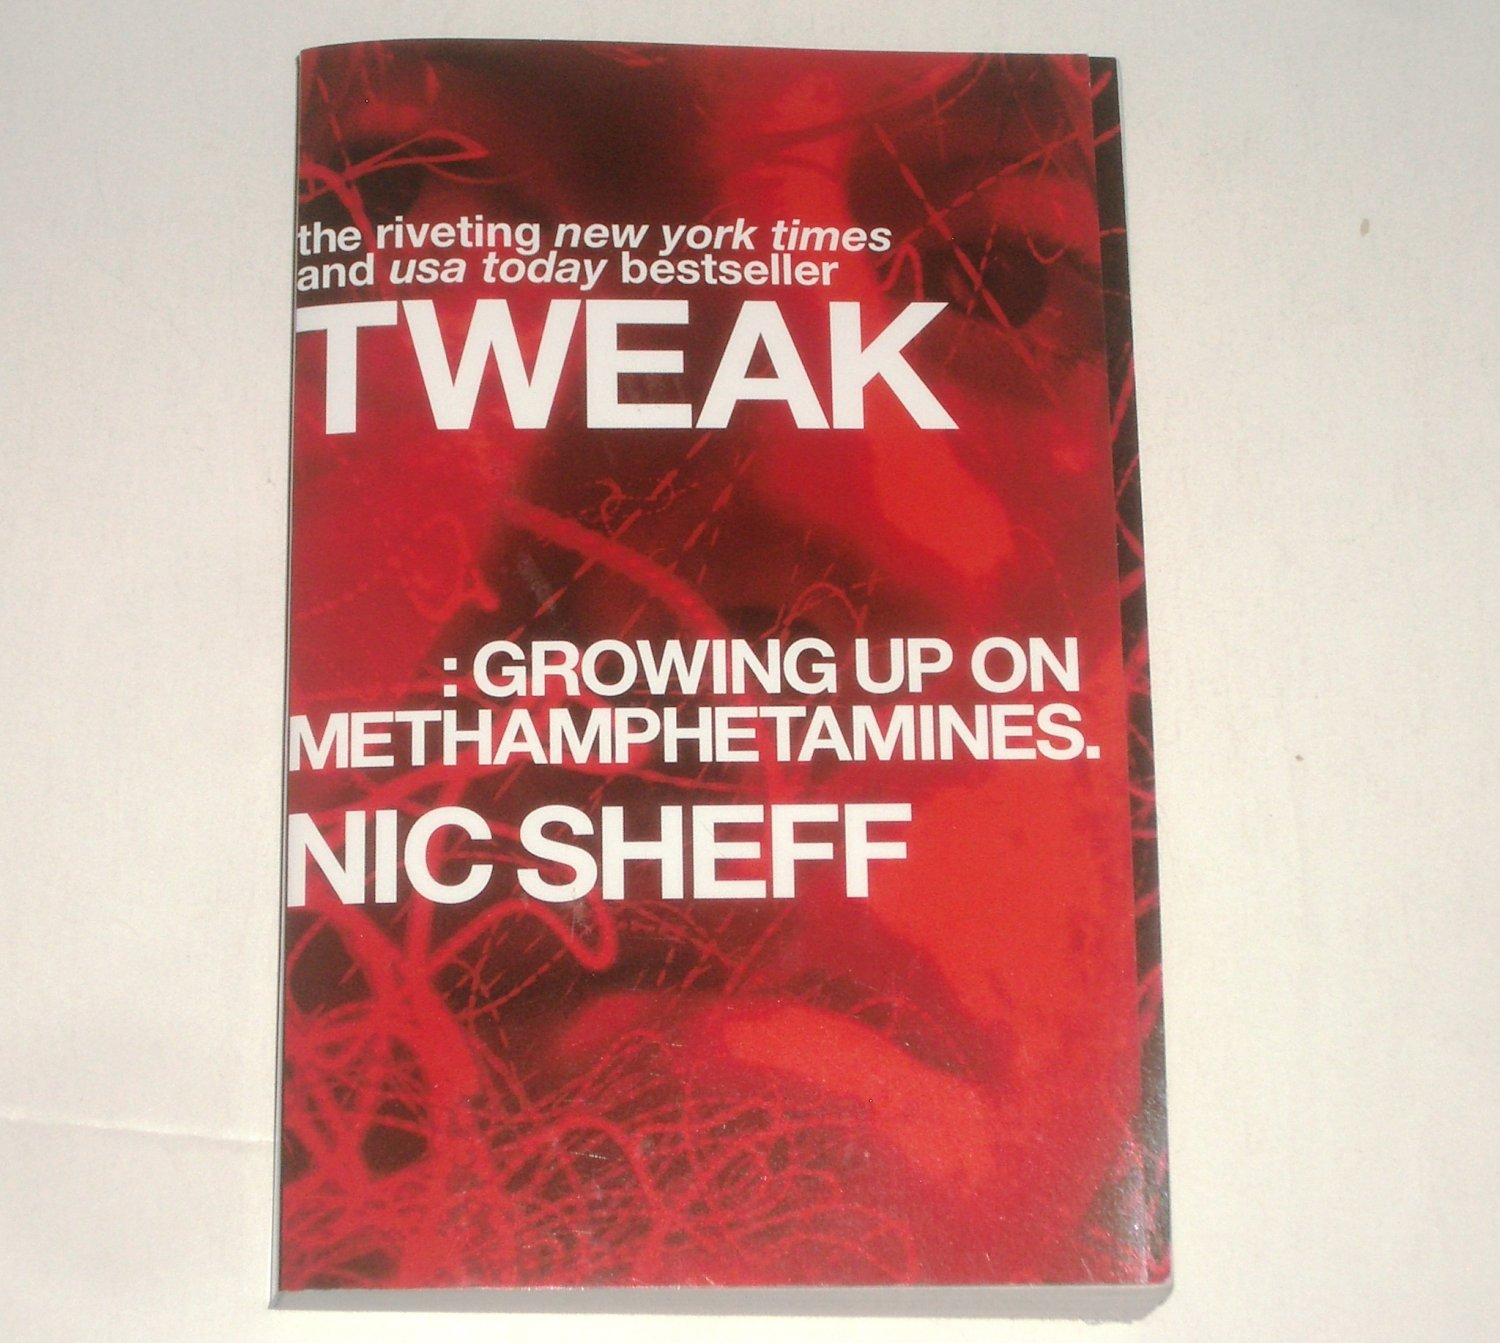 Tweak: Growing Up on Methamphetamines by Nic Sheff Trade Size